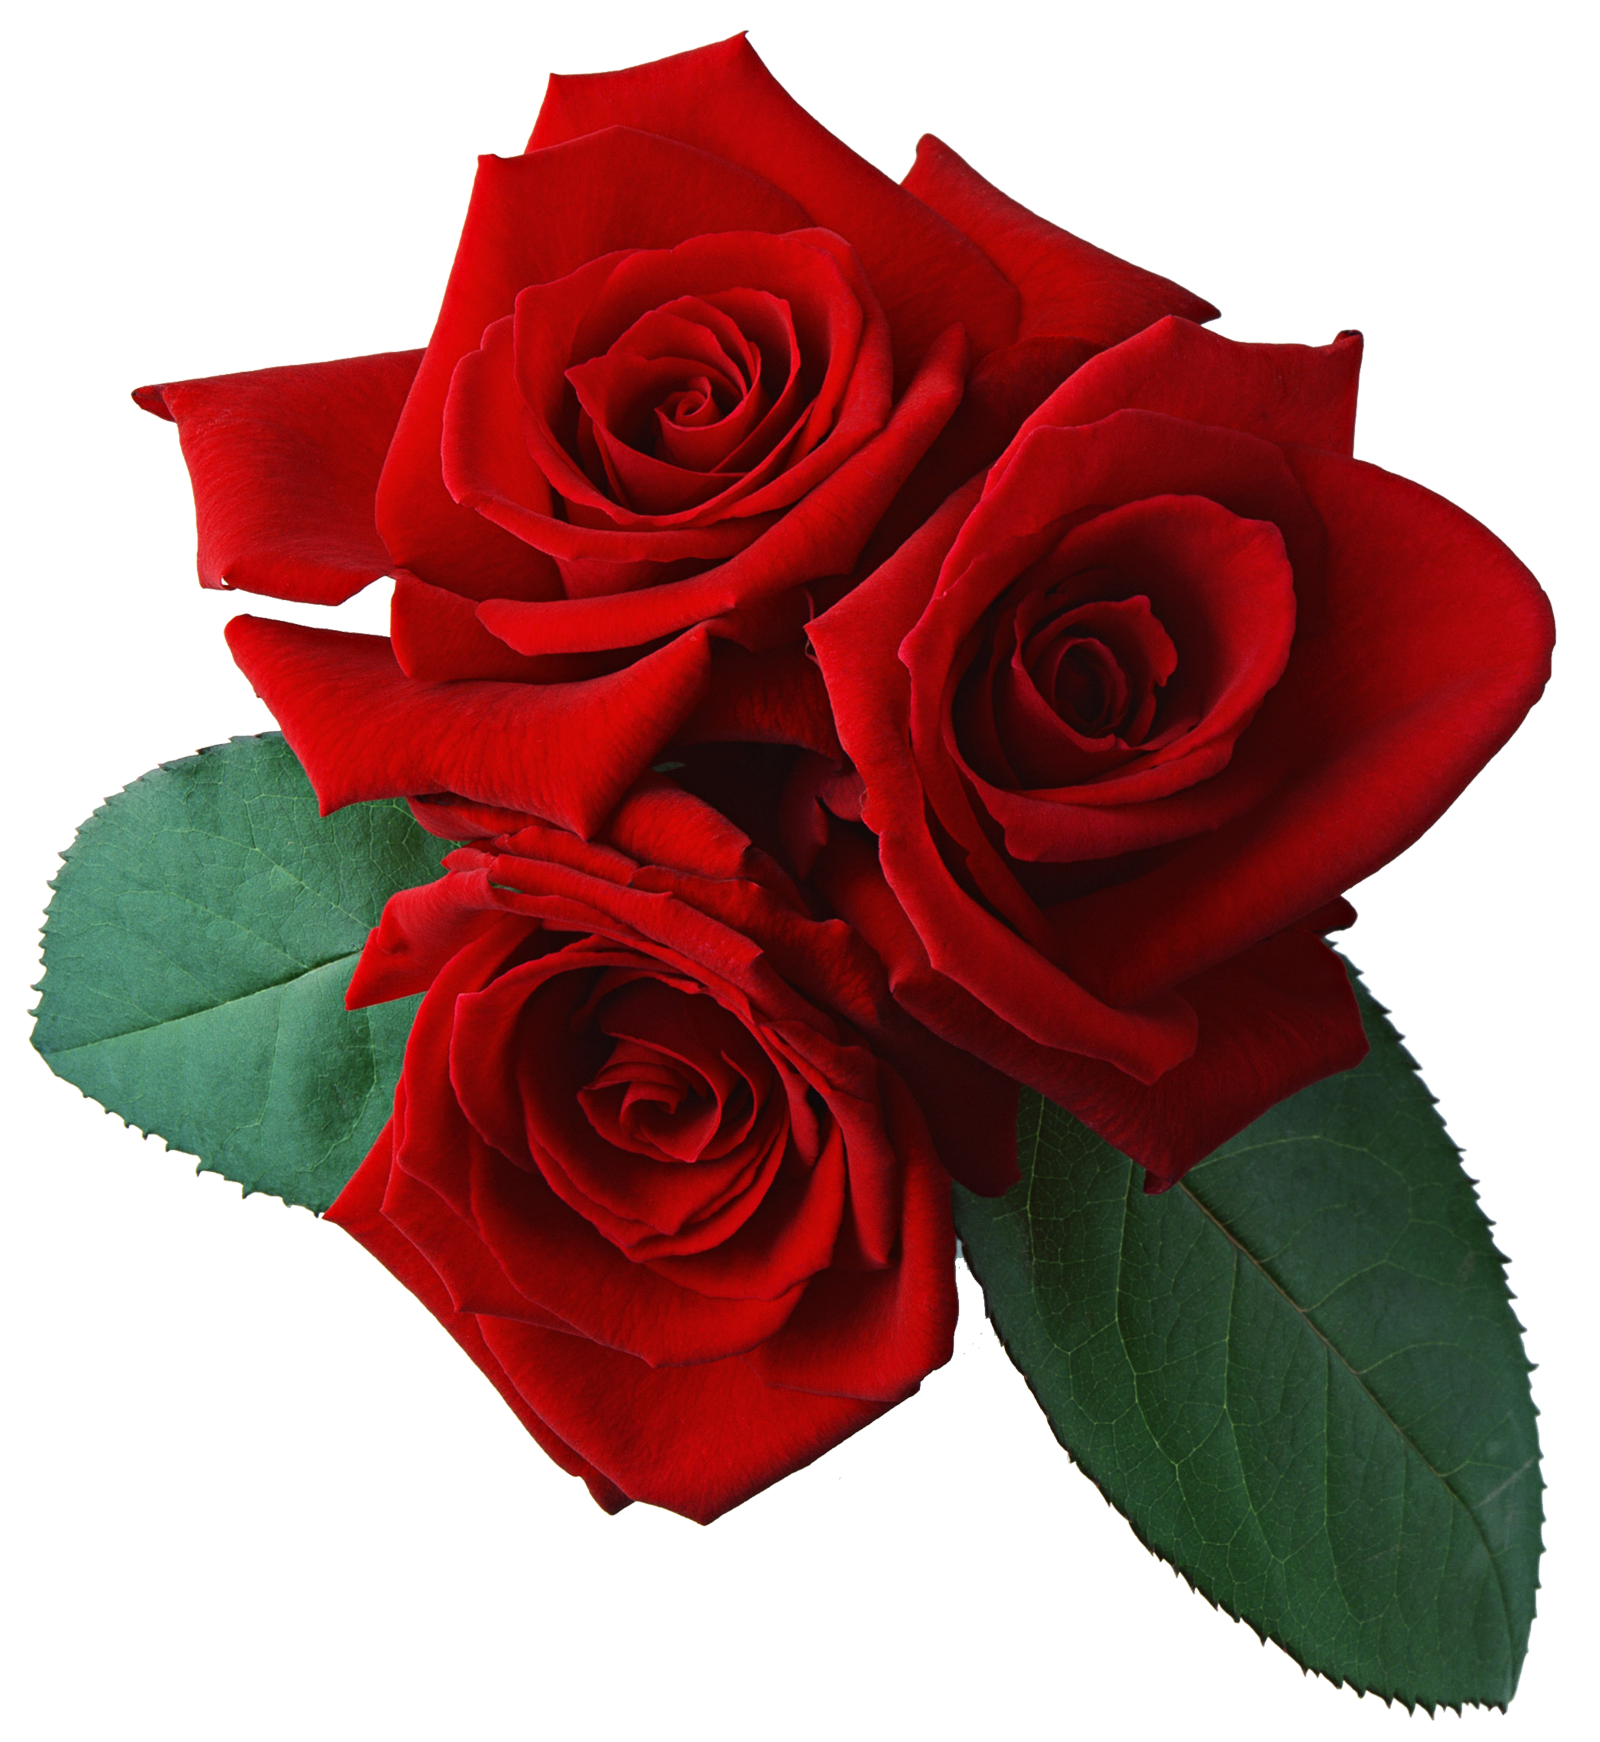 Red Rose with Transparent Background